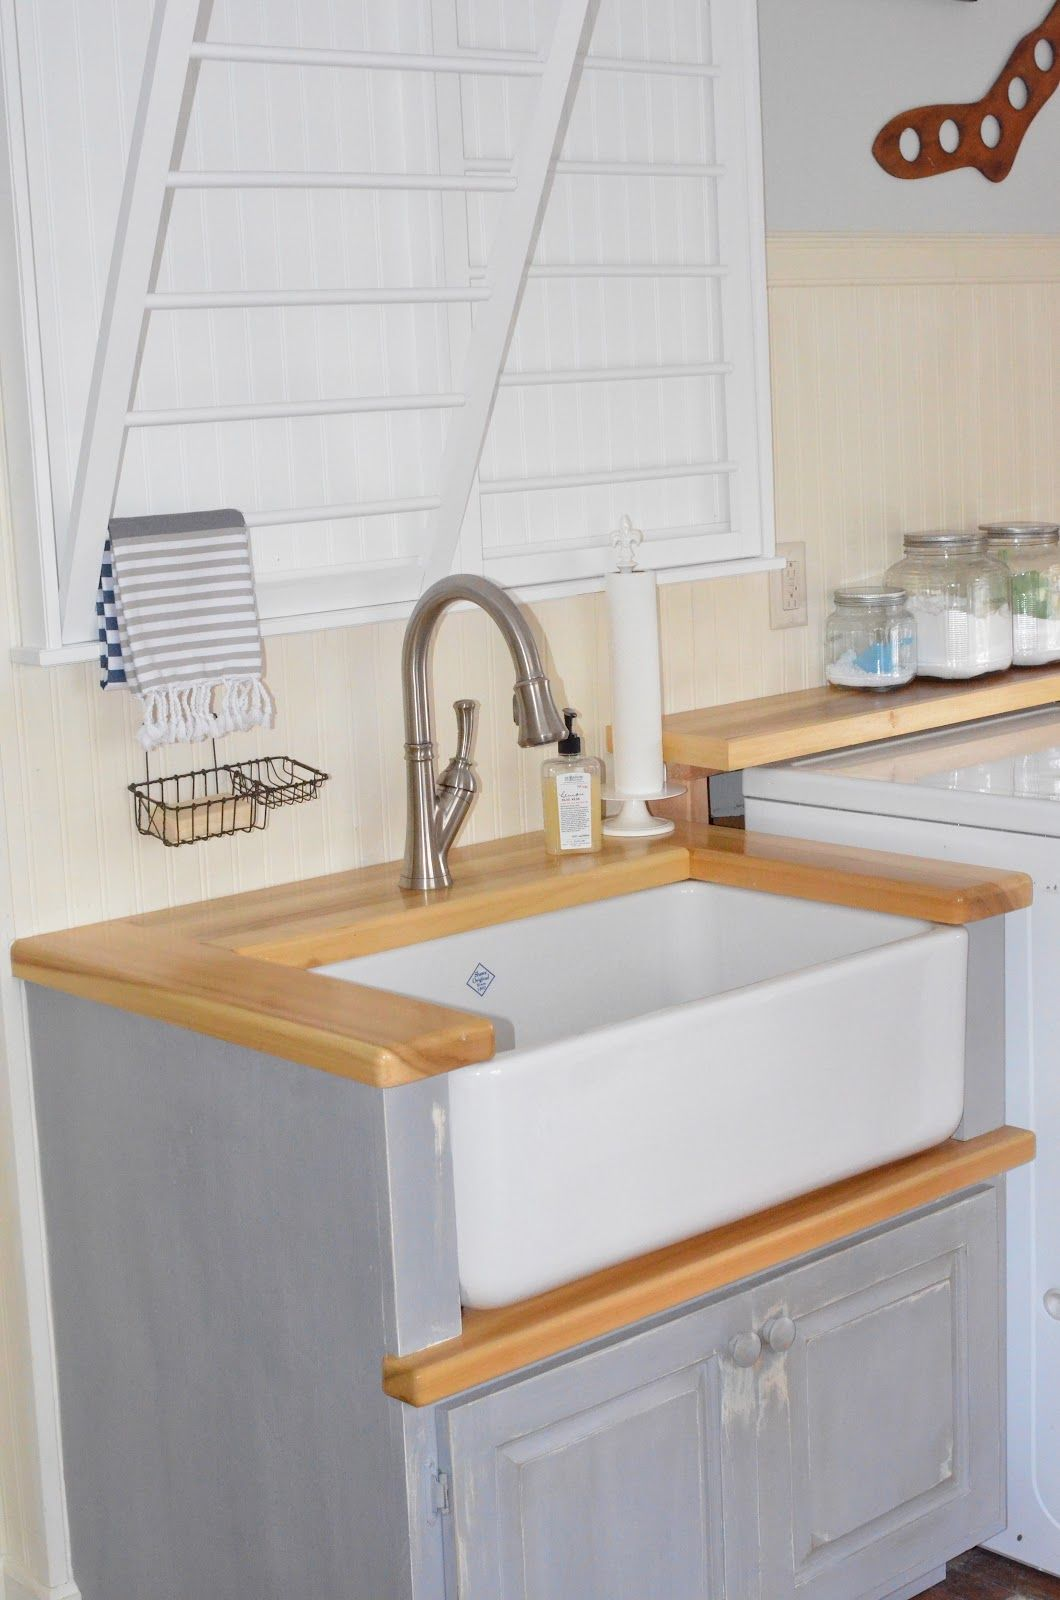 Apron Front Laundry Sink Cabinet Bing Images Laundry Room Sink